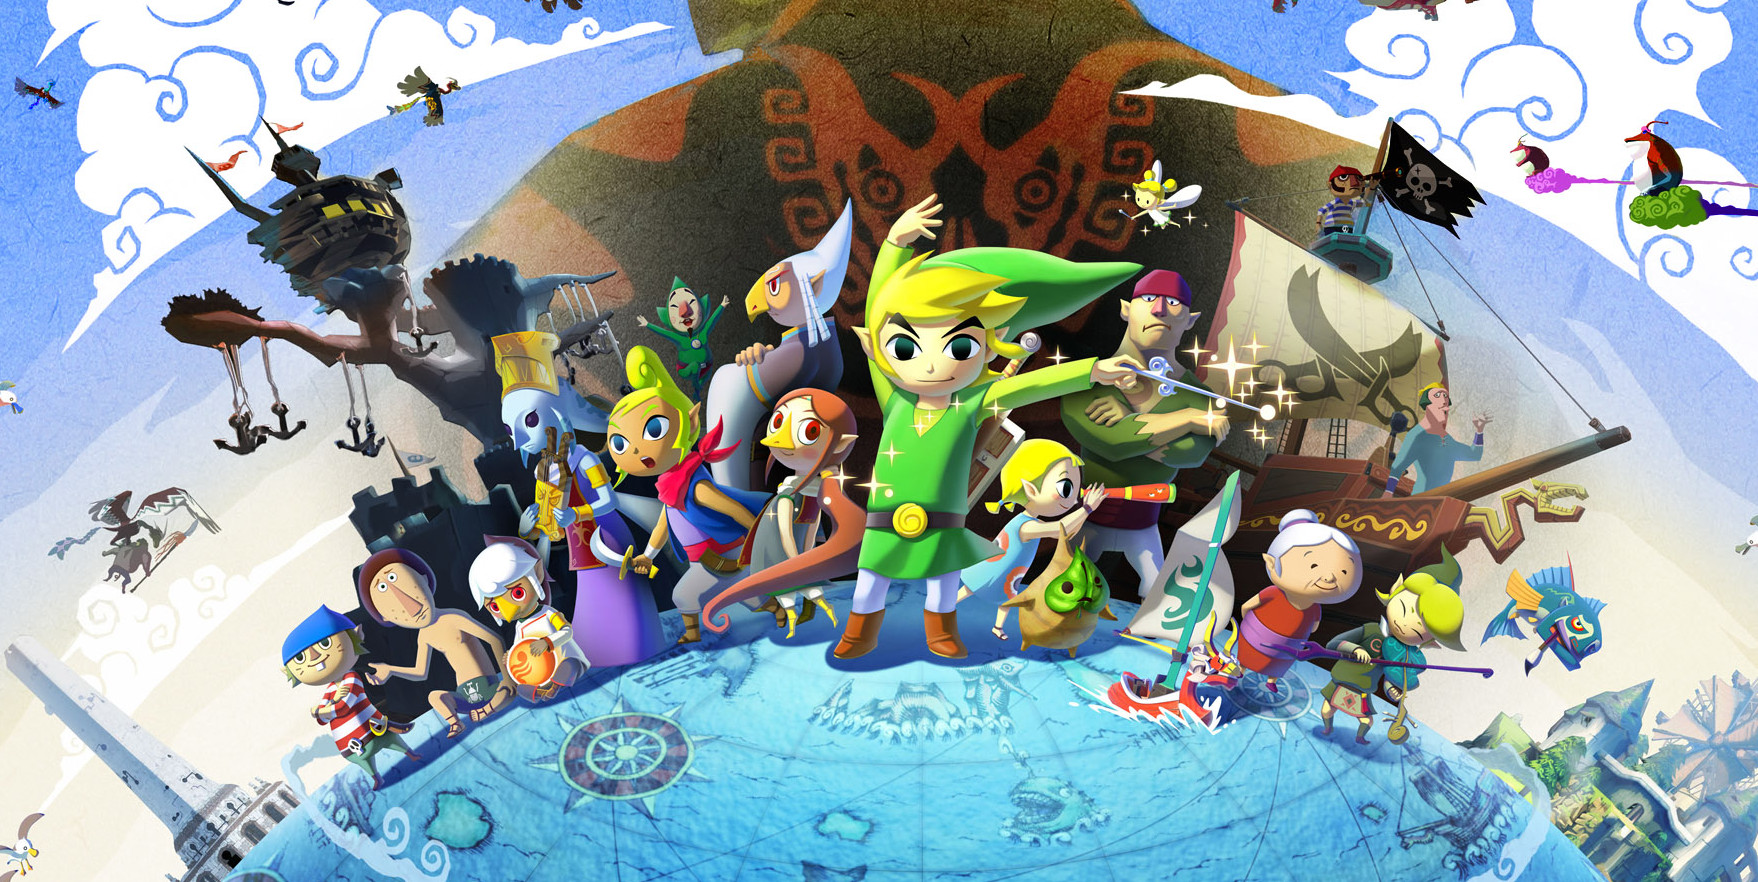 New The Legend of Zelda: Symphony of the Goddesses content debuts